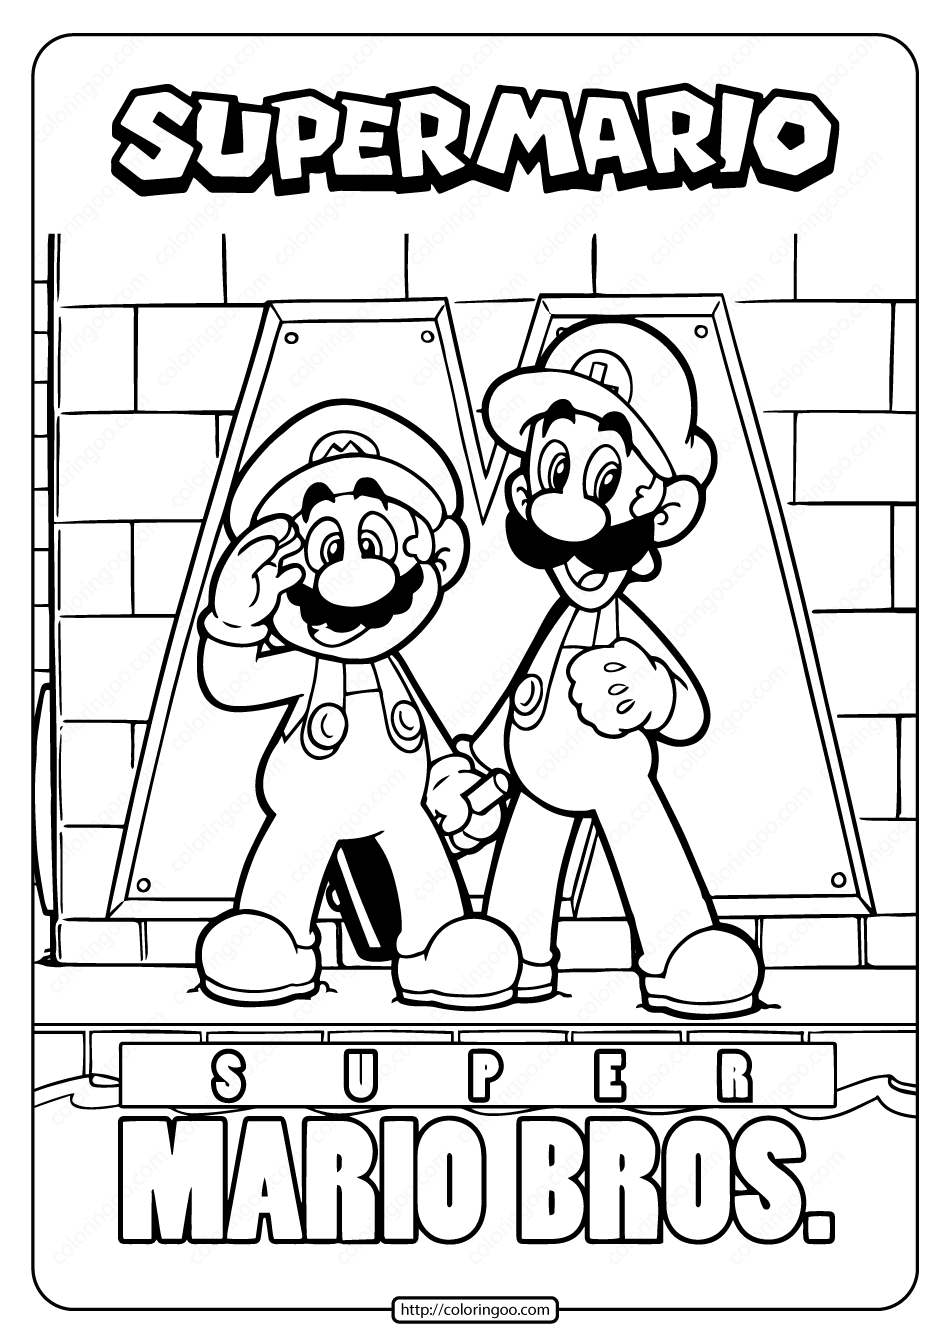 Super Mario Bros. coloring pages | Free Coloring Pages | 1344x950